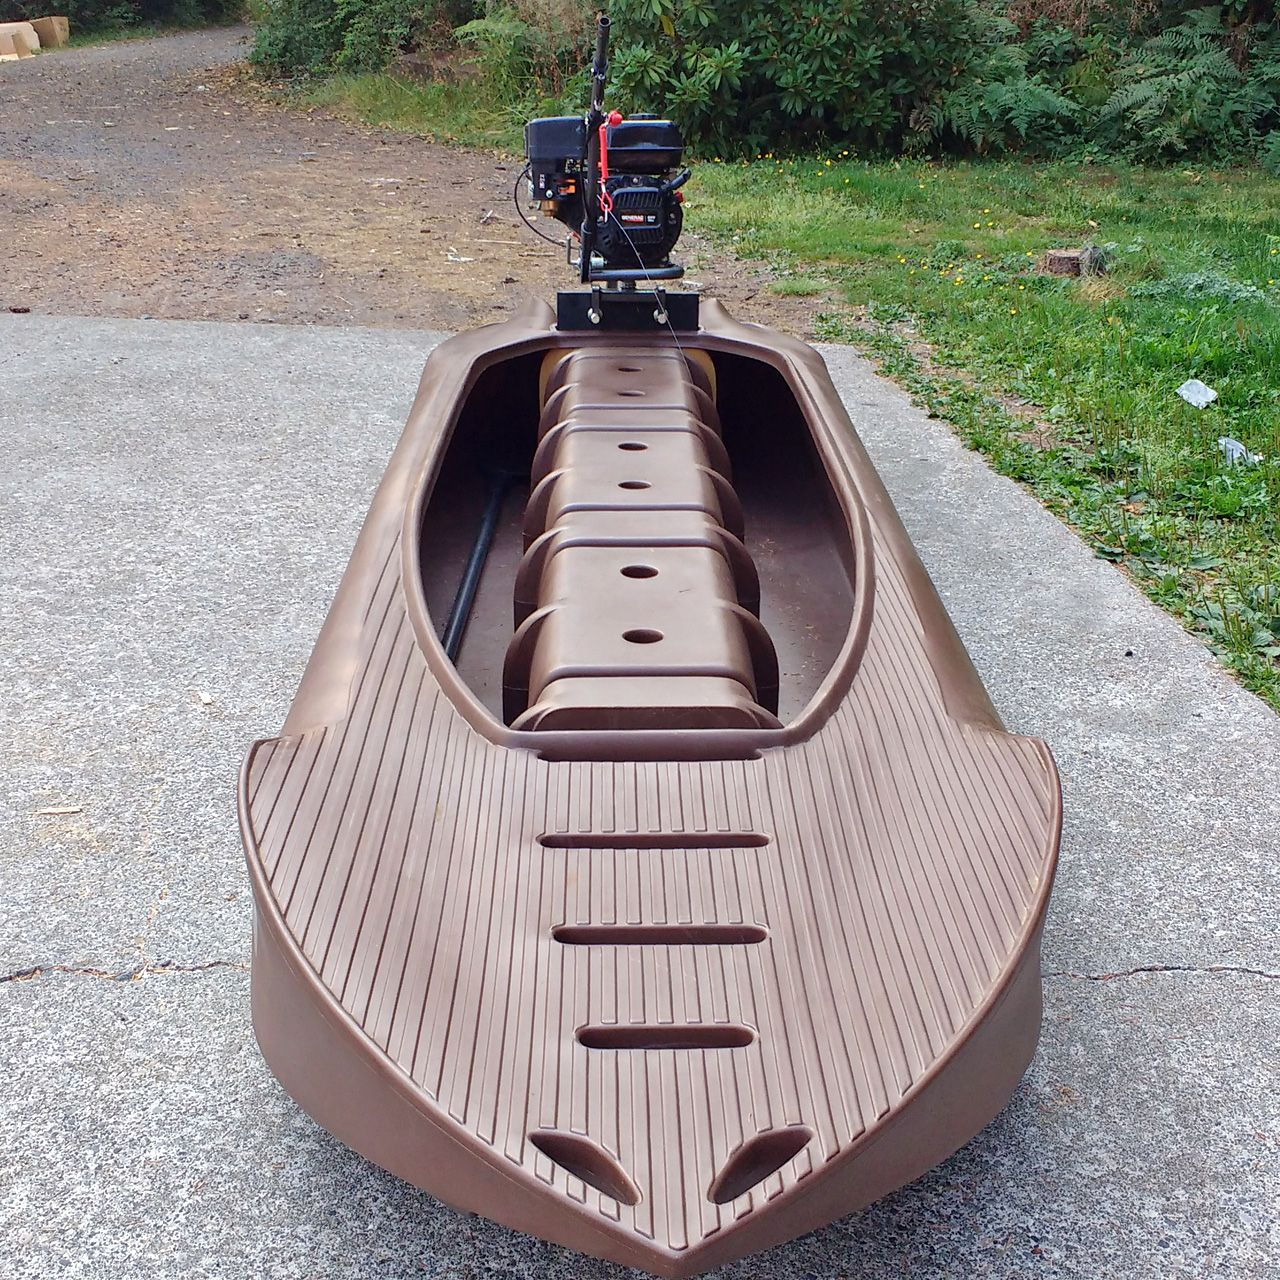 with canoe duck hunting blind stealthy instantly cover max the deluxe hd outdoors gear guide review a stearns super and your or boat waterfowl into in convert blinds